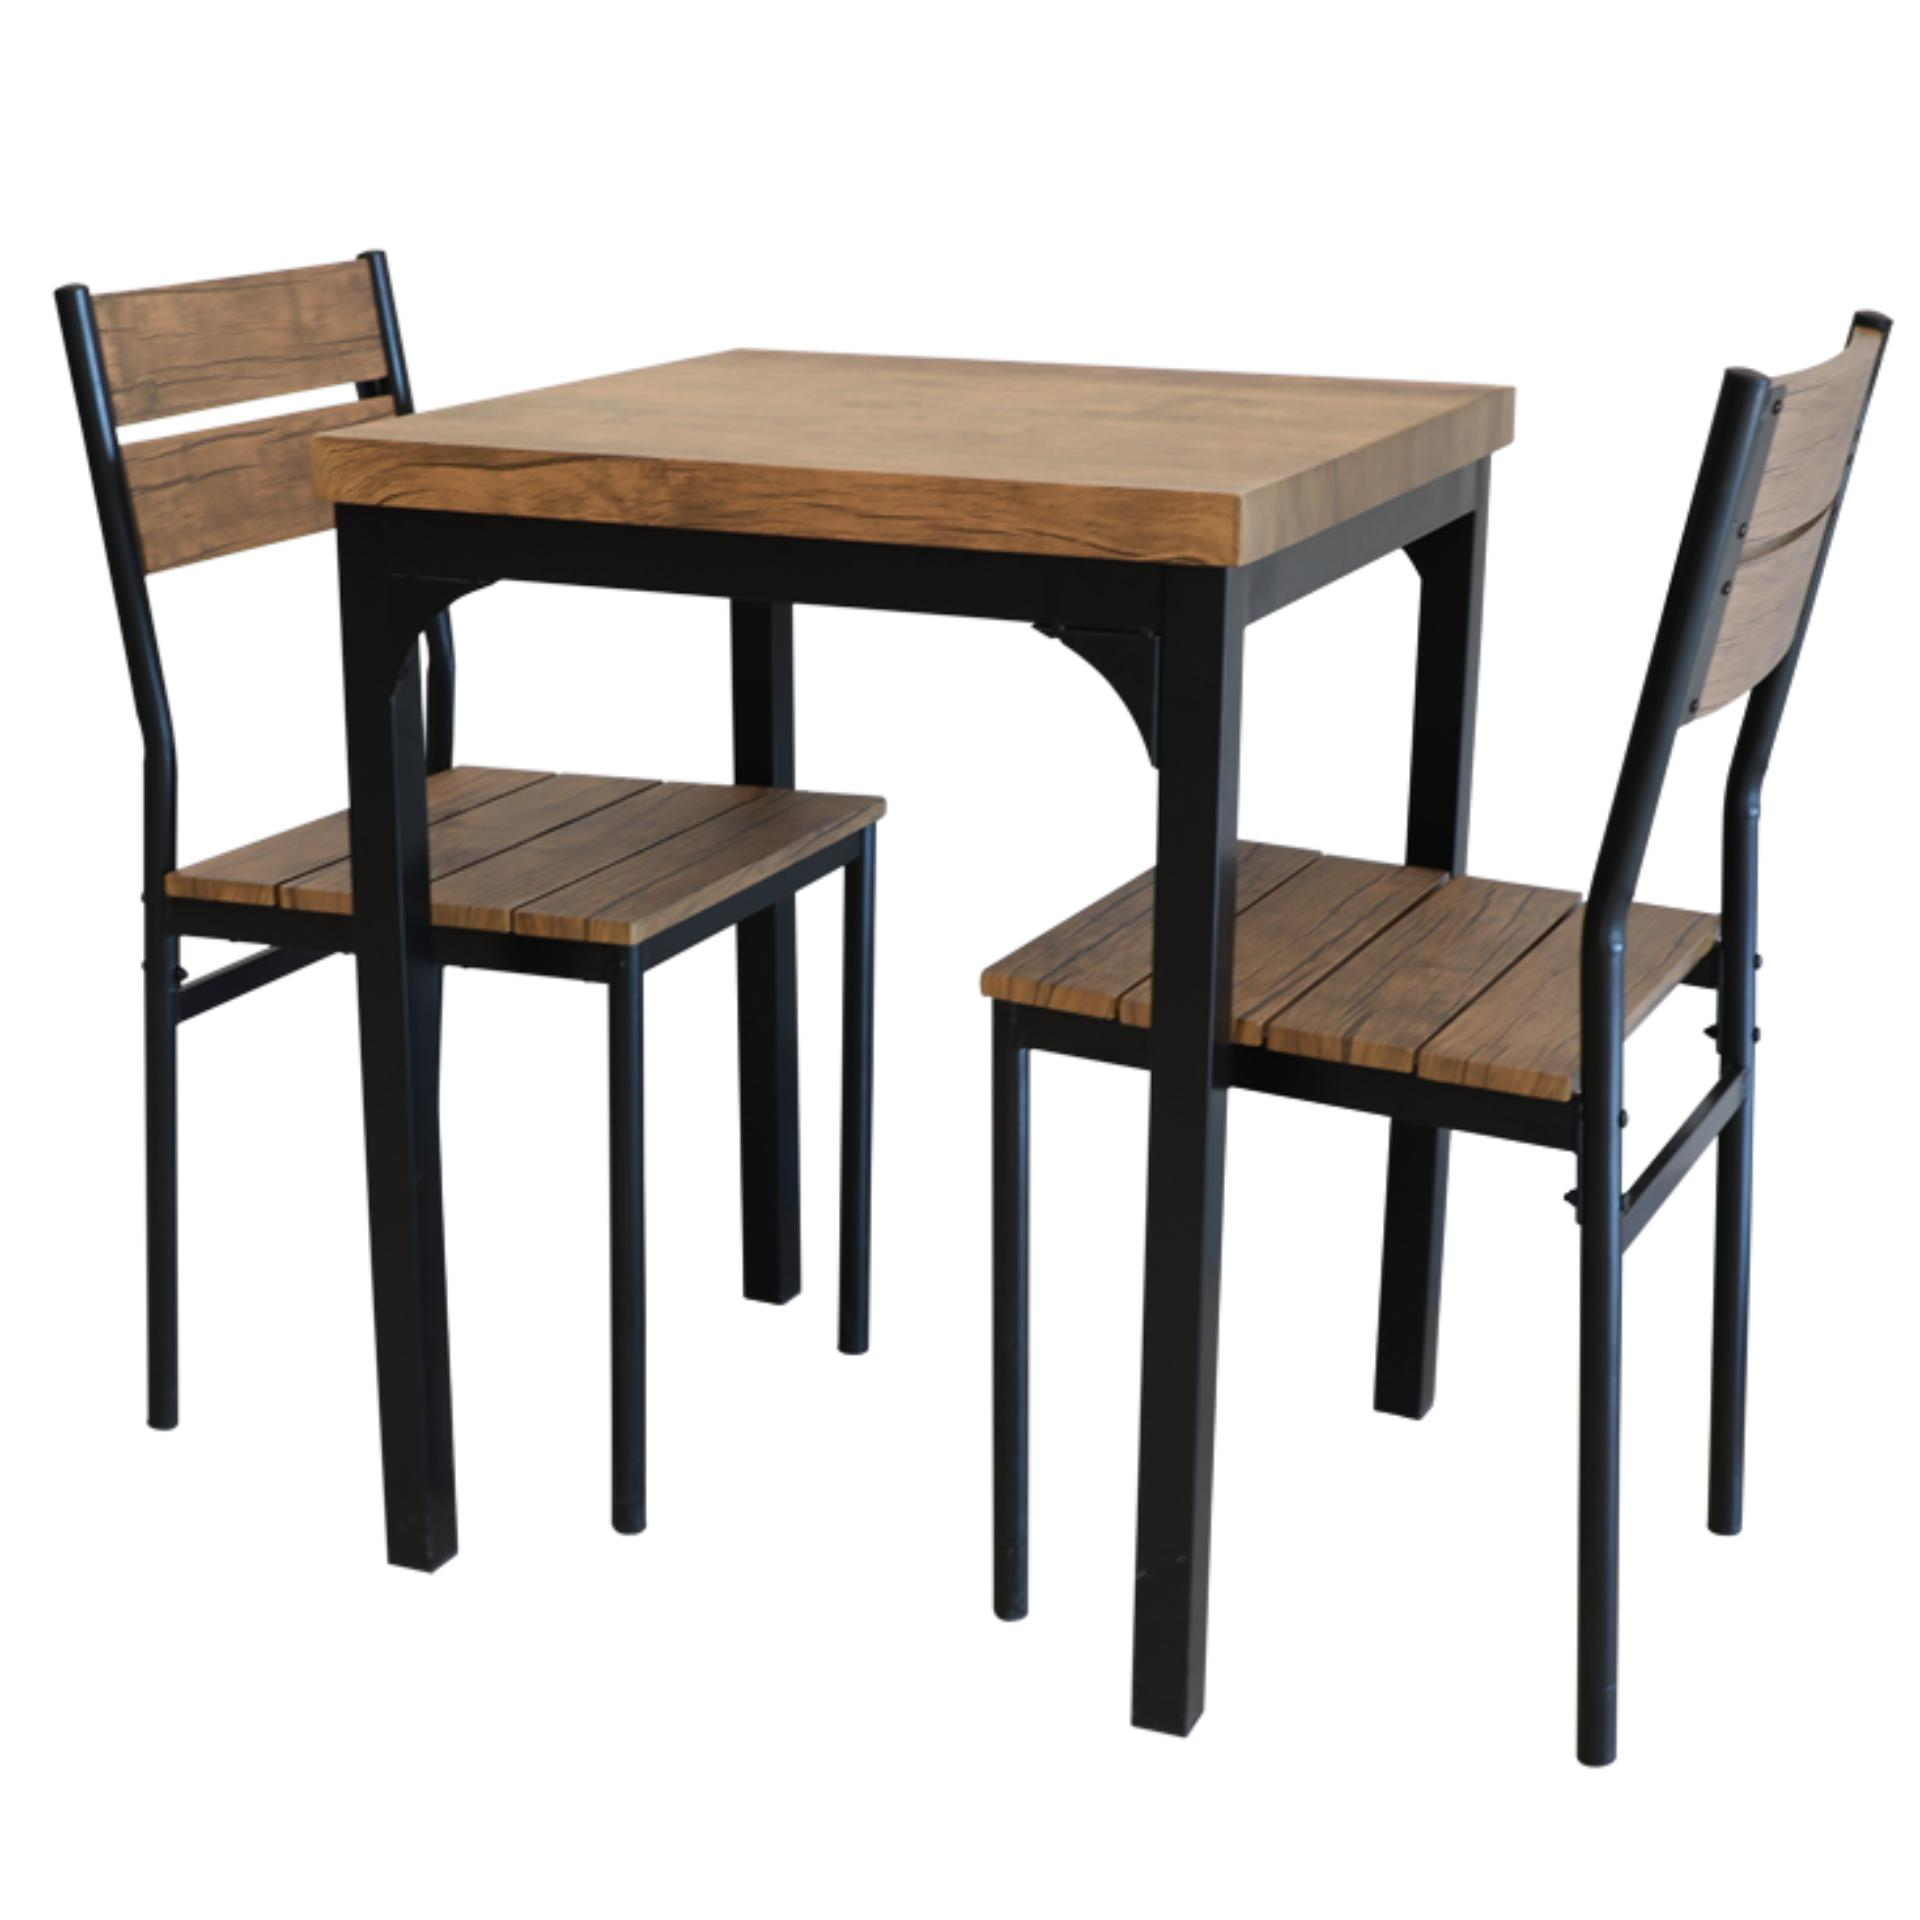 4e77a17707bd Kitchen Furniture for sale - Dining Furniture prices, brands & review in  Philippines | Lazada.com.ph